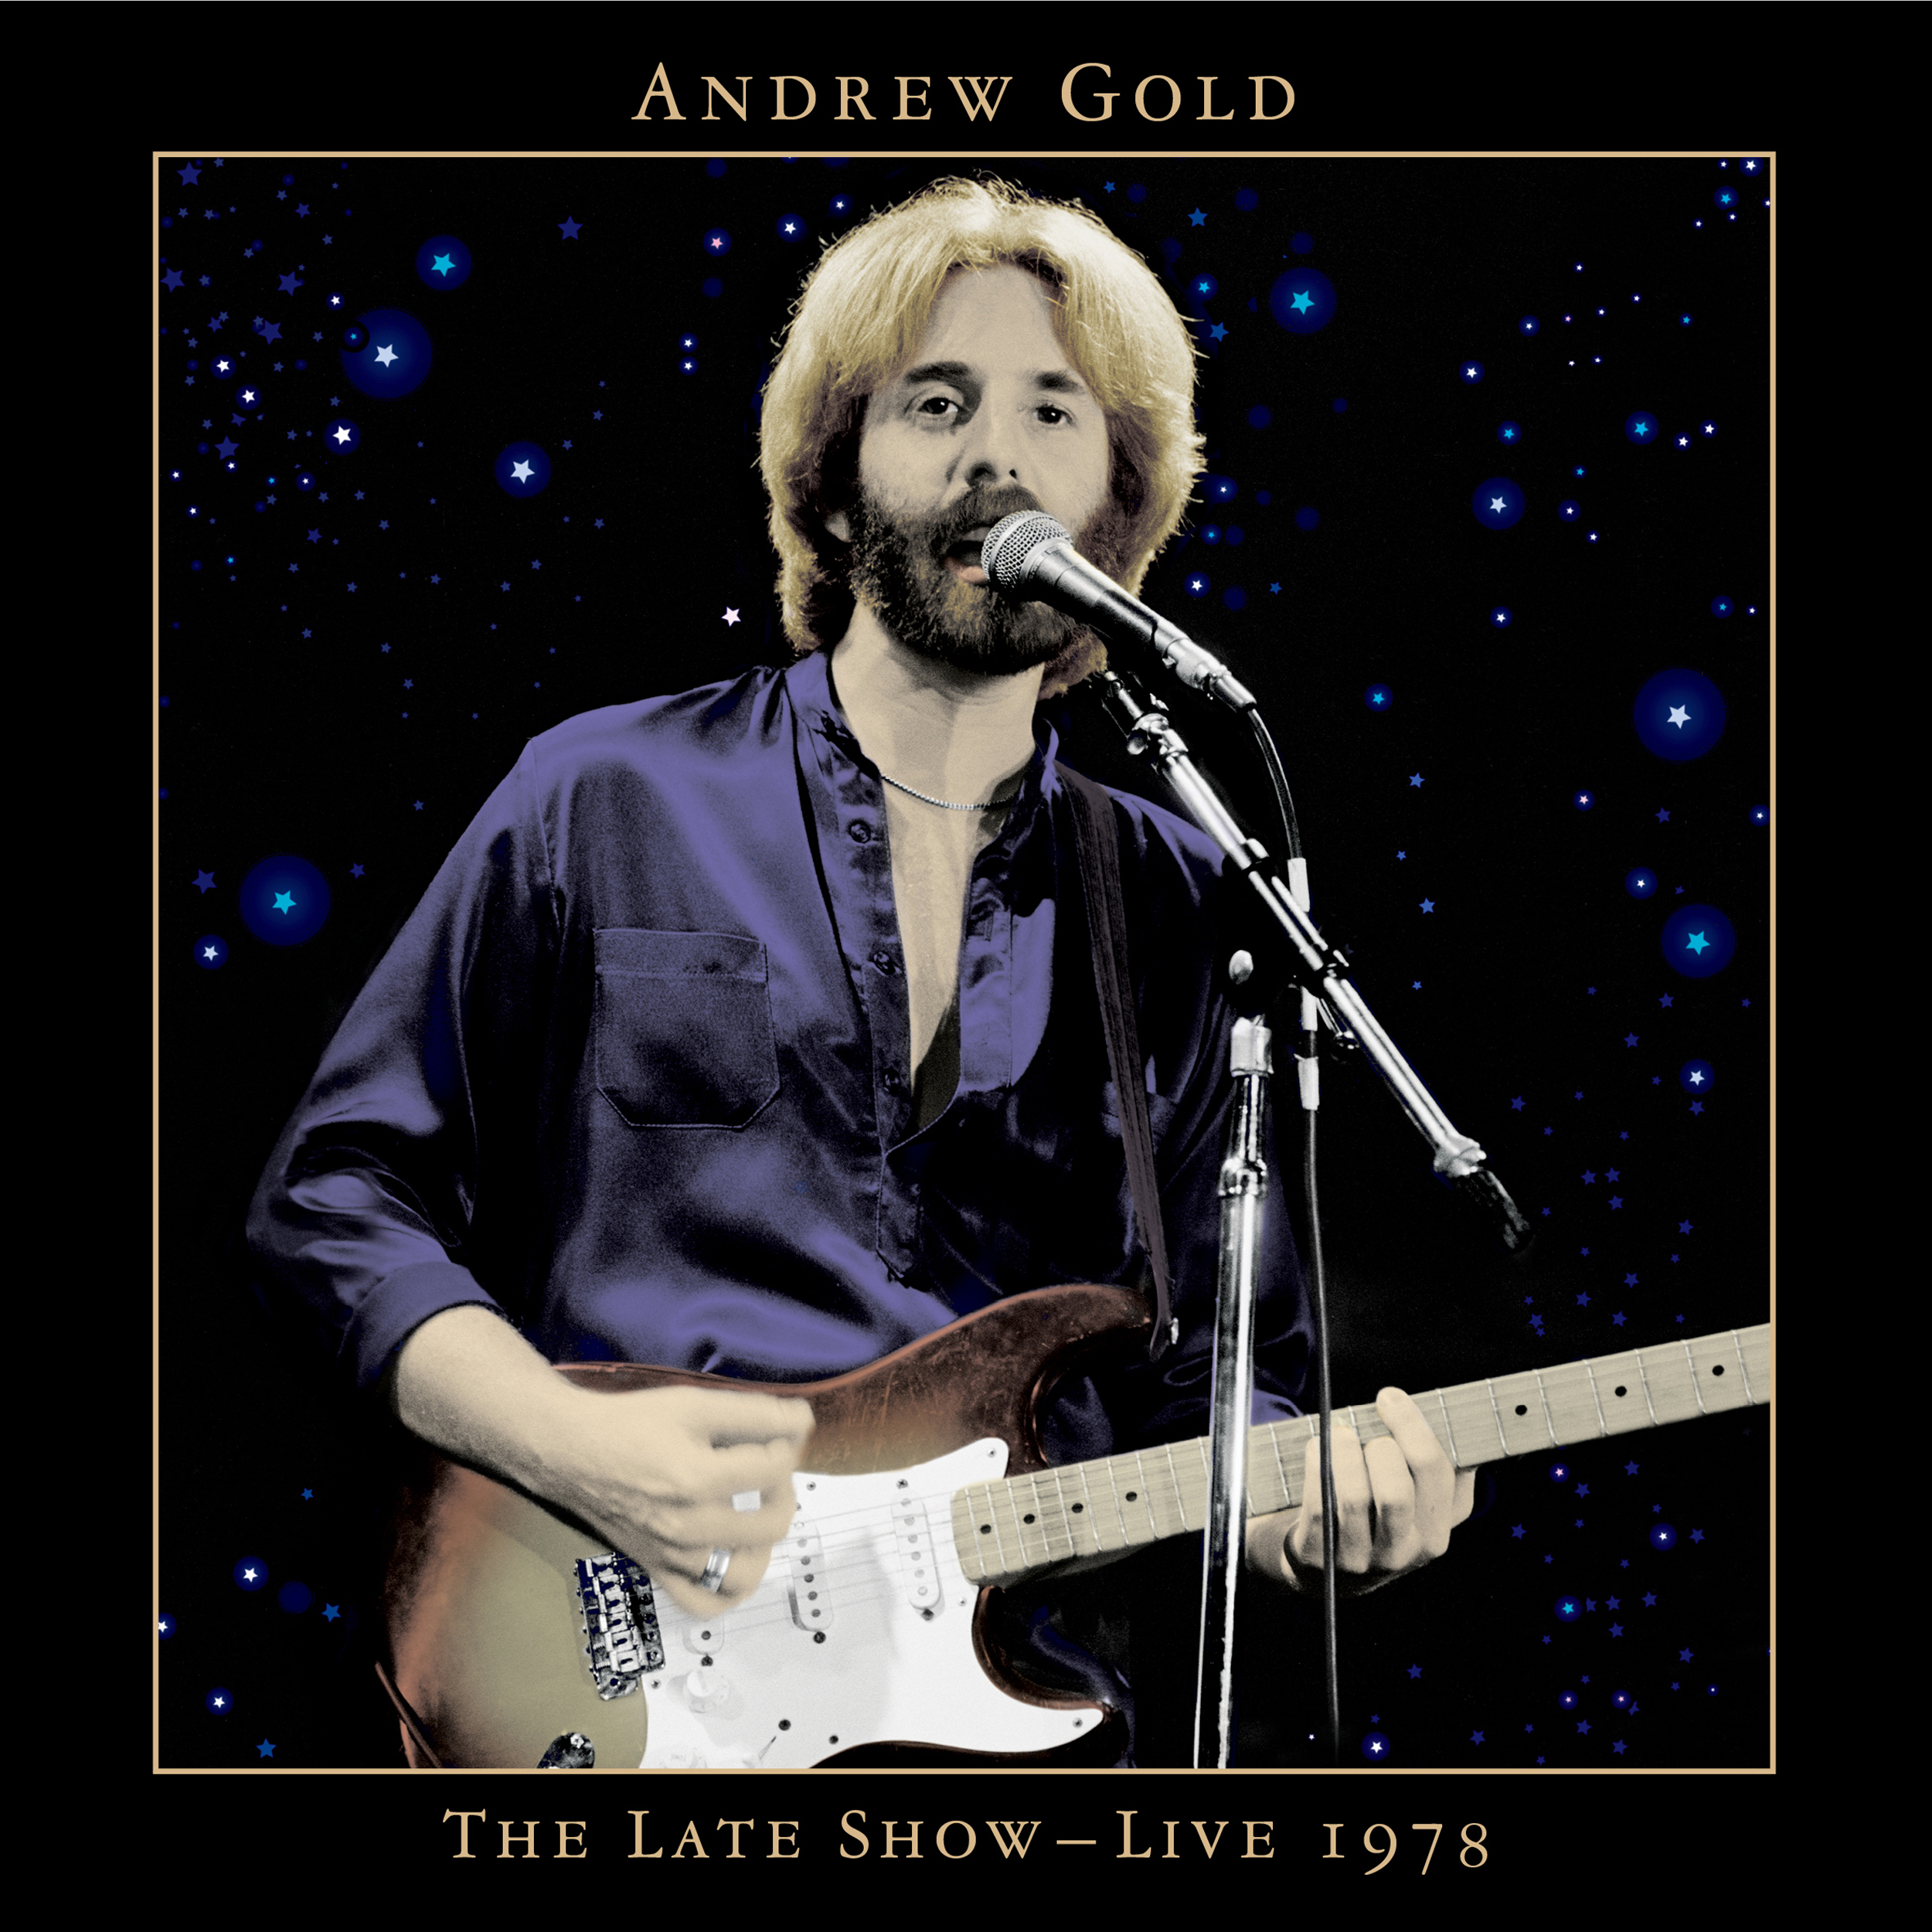 Andrew Gold -The Late Show:Live 1978  Release Date: May 12, 2015 Label: Omnivore Recordings  SERVICE: Restoration, Mastering NUMBER OF DISCS: 1 GENRE: Rock FORMAT: CD